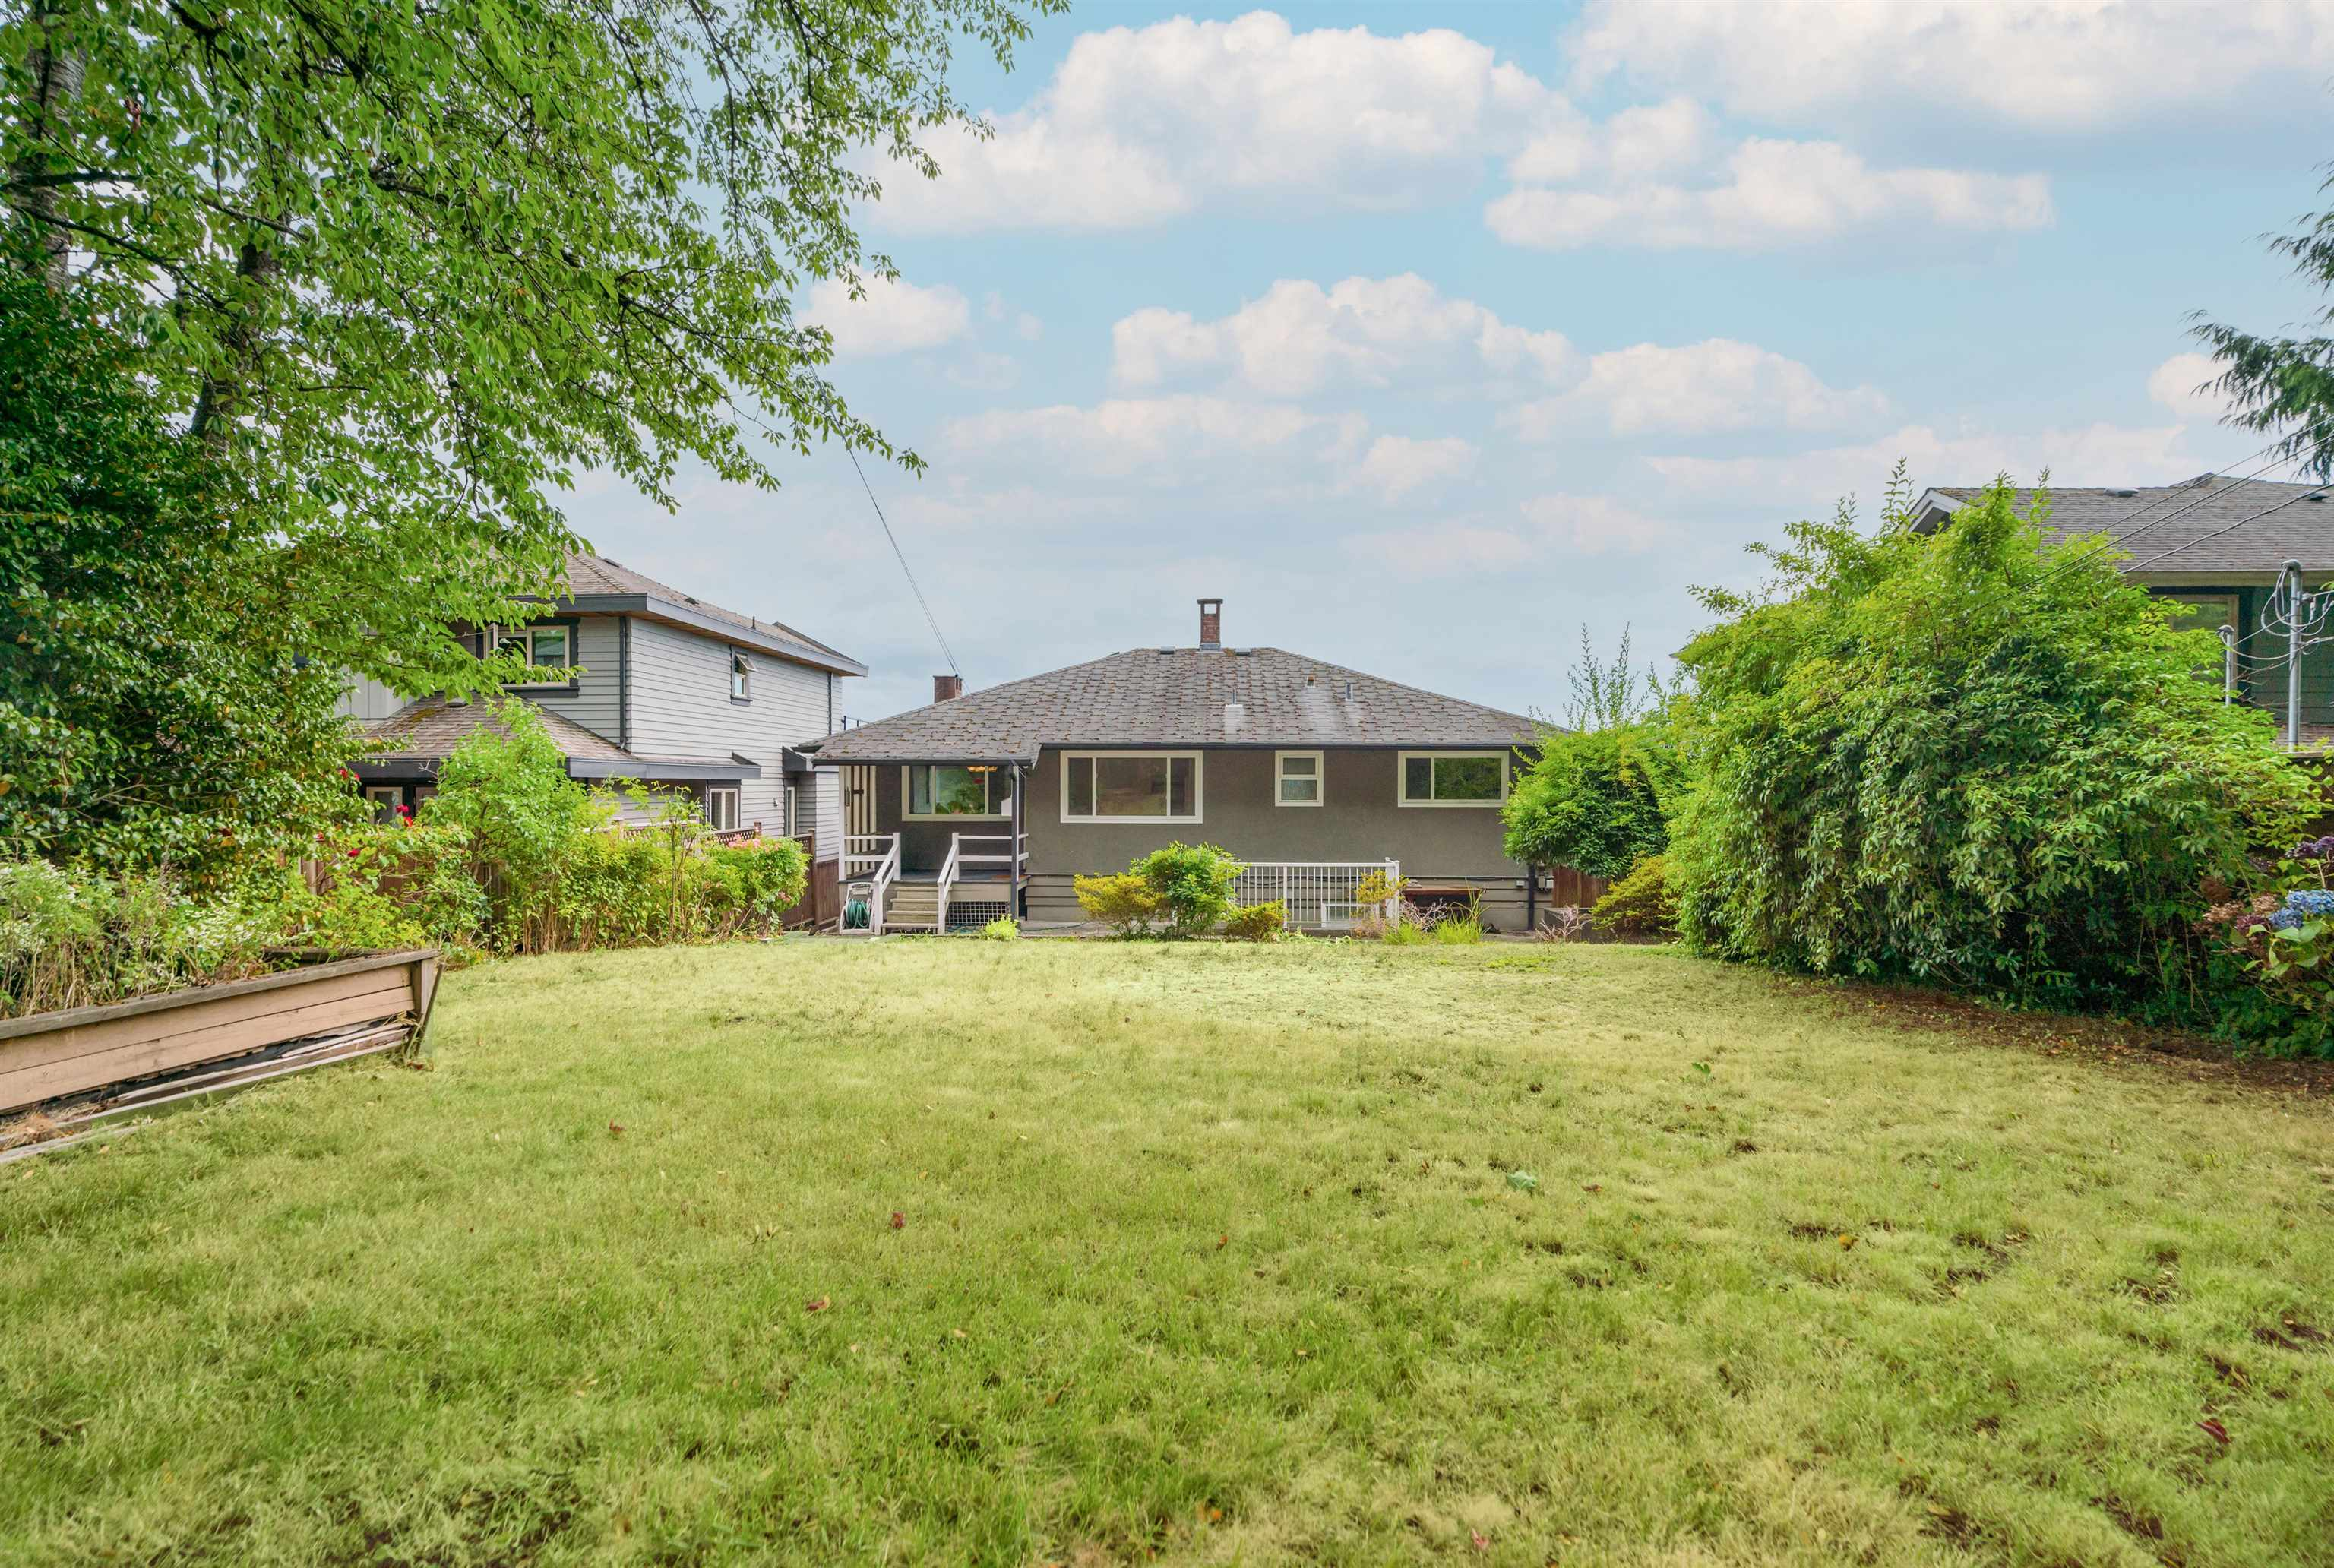 962 WHITCHURCH STREET - Calverhall House/Single Family for sale, 4 Bedrooms (R2609417) - #17